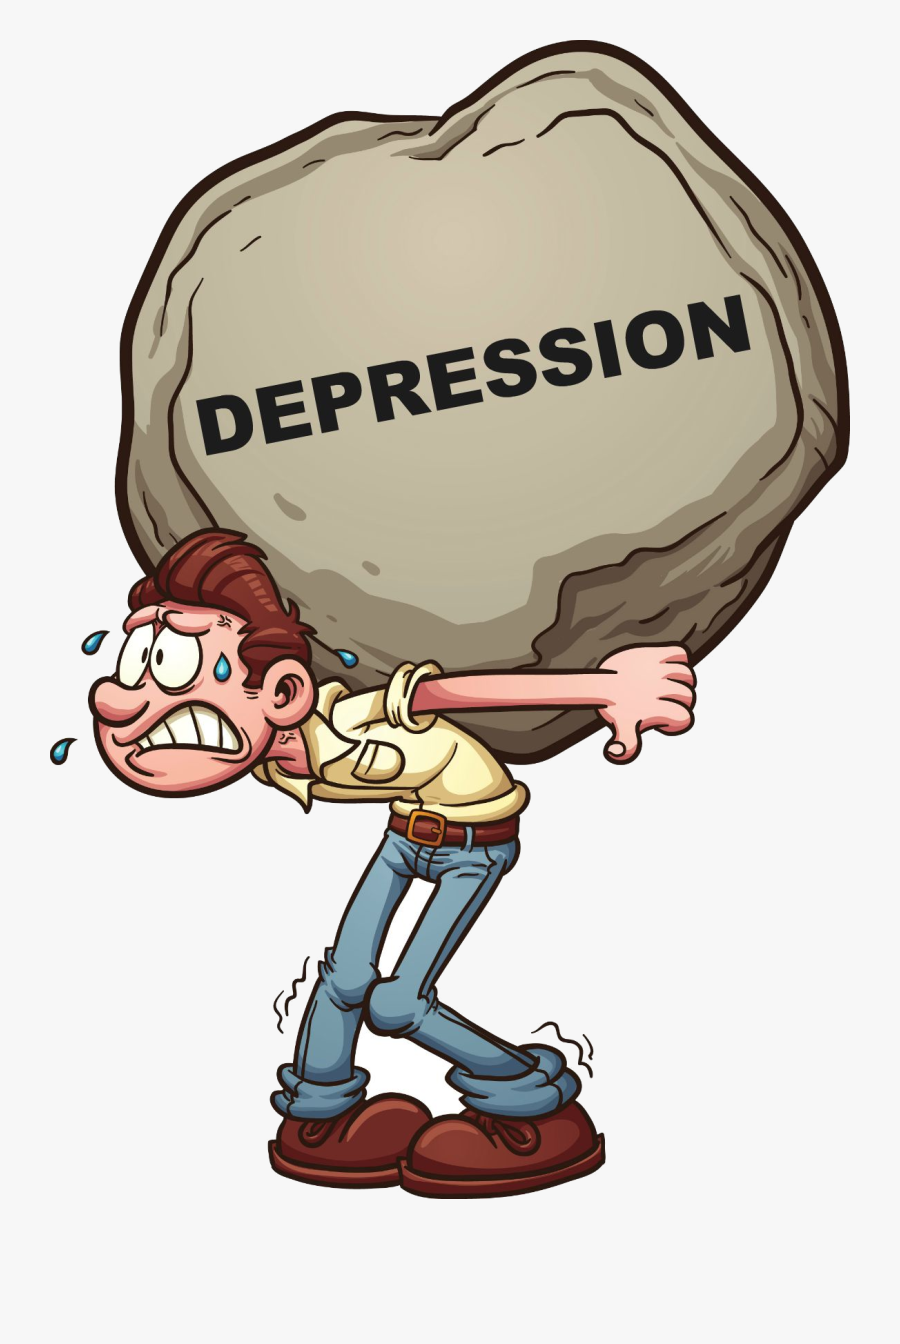 Depression Causes Of Clip Art Clipart Transparent Png - Symptoms Of Depression Cartoon, Transparent Clipart